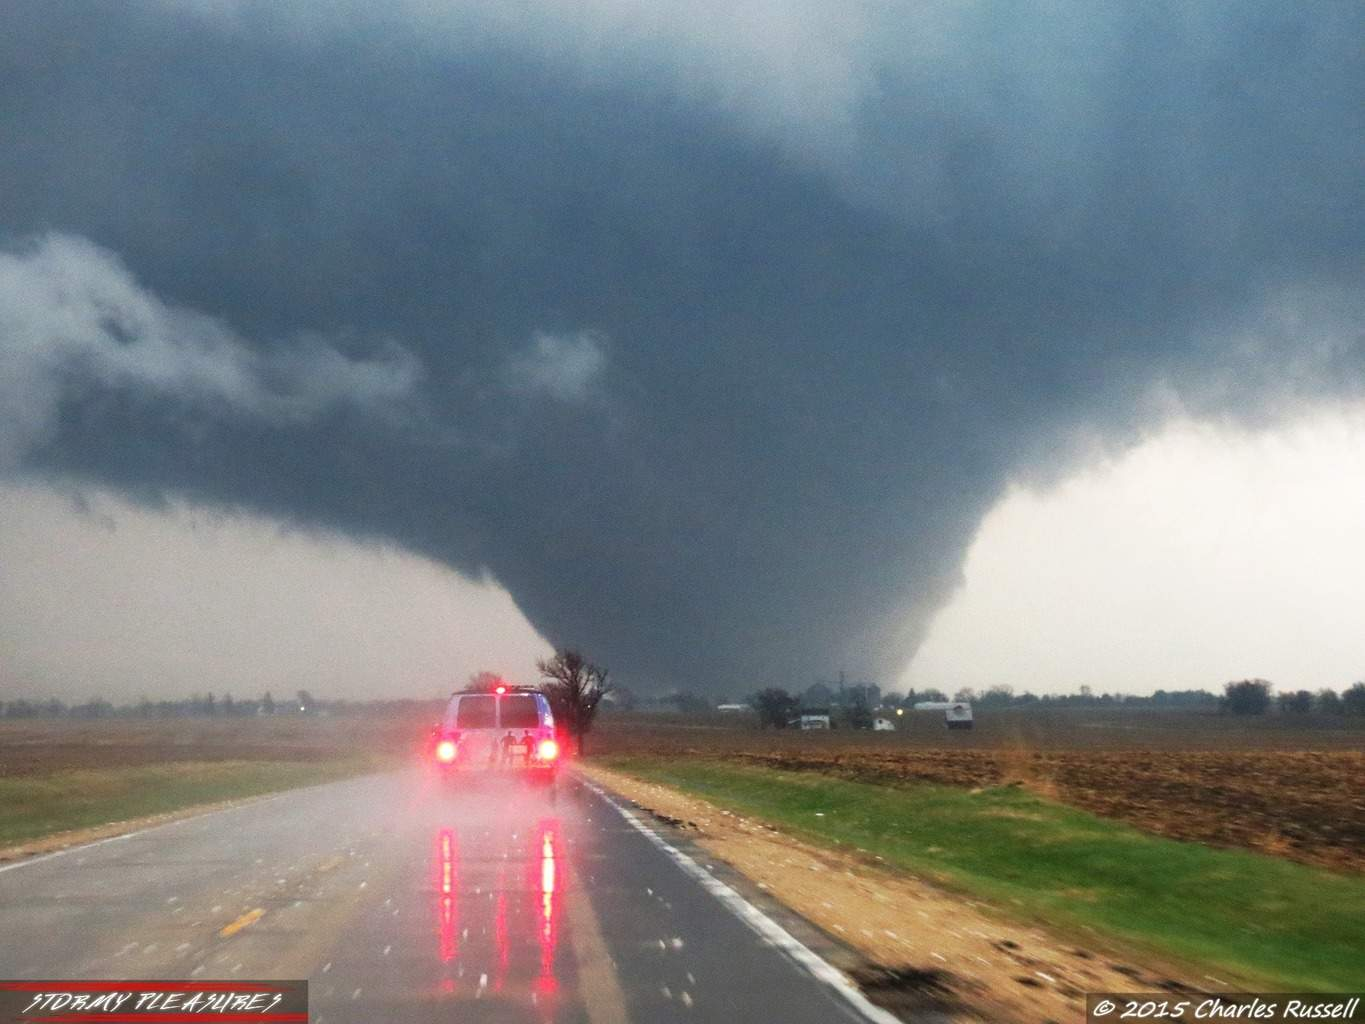 One of the most amazing and epic chase days of my whole life. Here my buddy CJ and I were behind Extreme Tornado Tours getting up close and personal with this EF-4 wedge tornado near Rochelle, IL on 4/9/15! This beast was amazing to watch through it's life. A massive wedge tornado certainly gets the adrenaline pumping!!